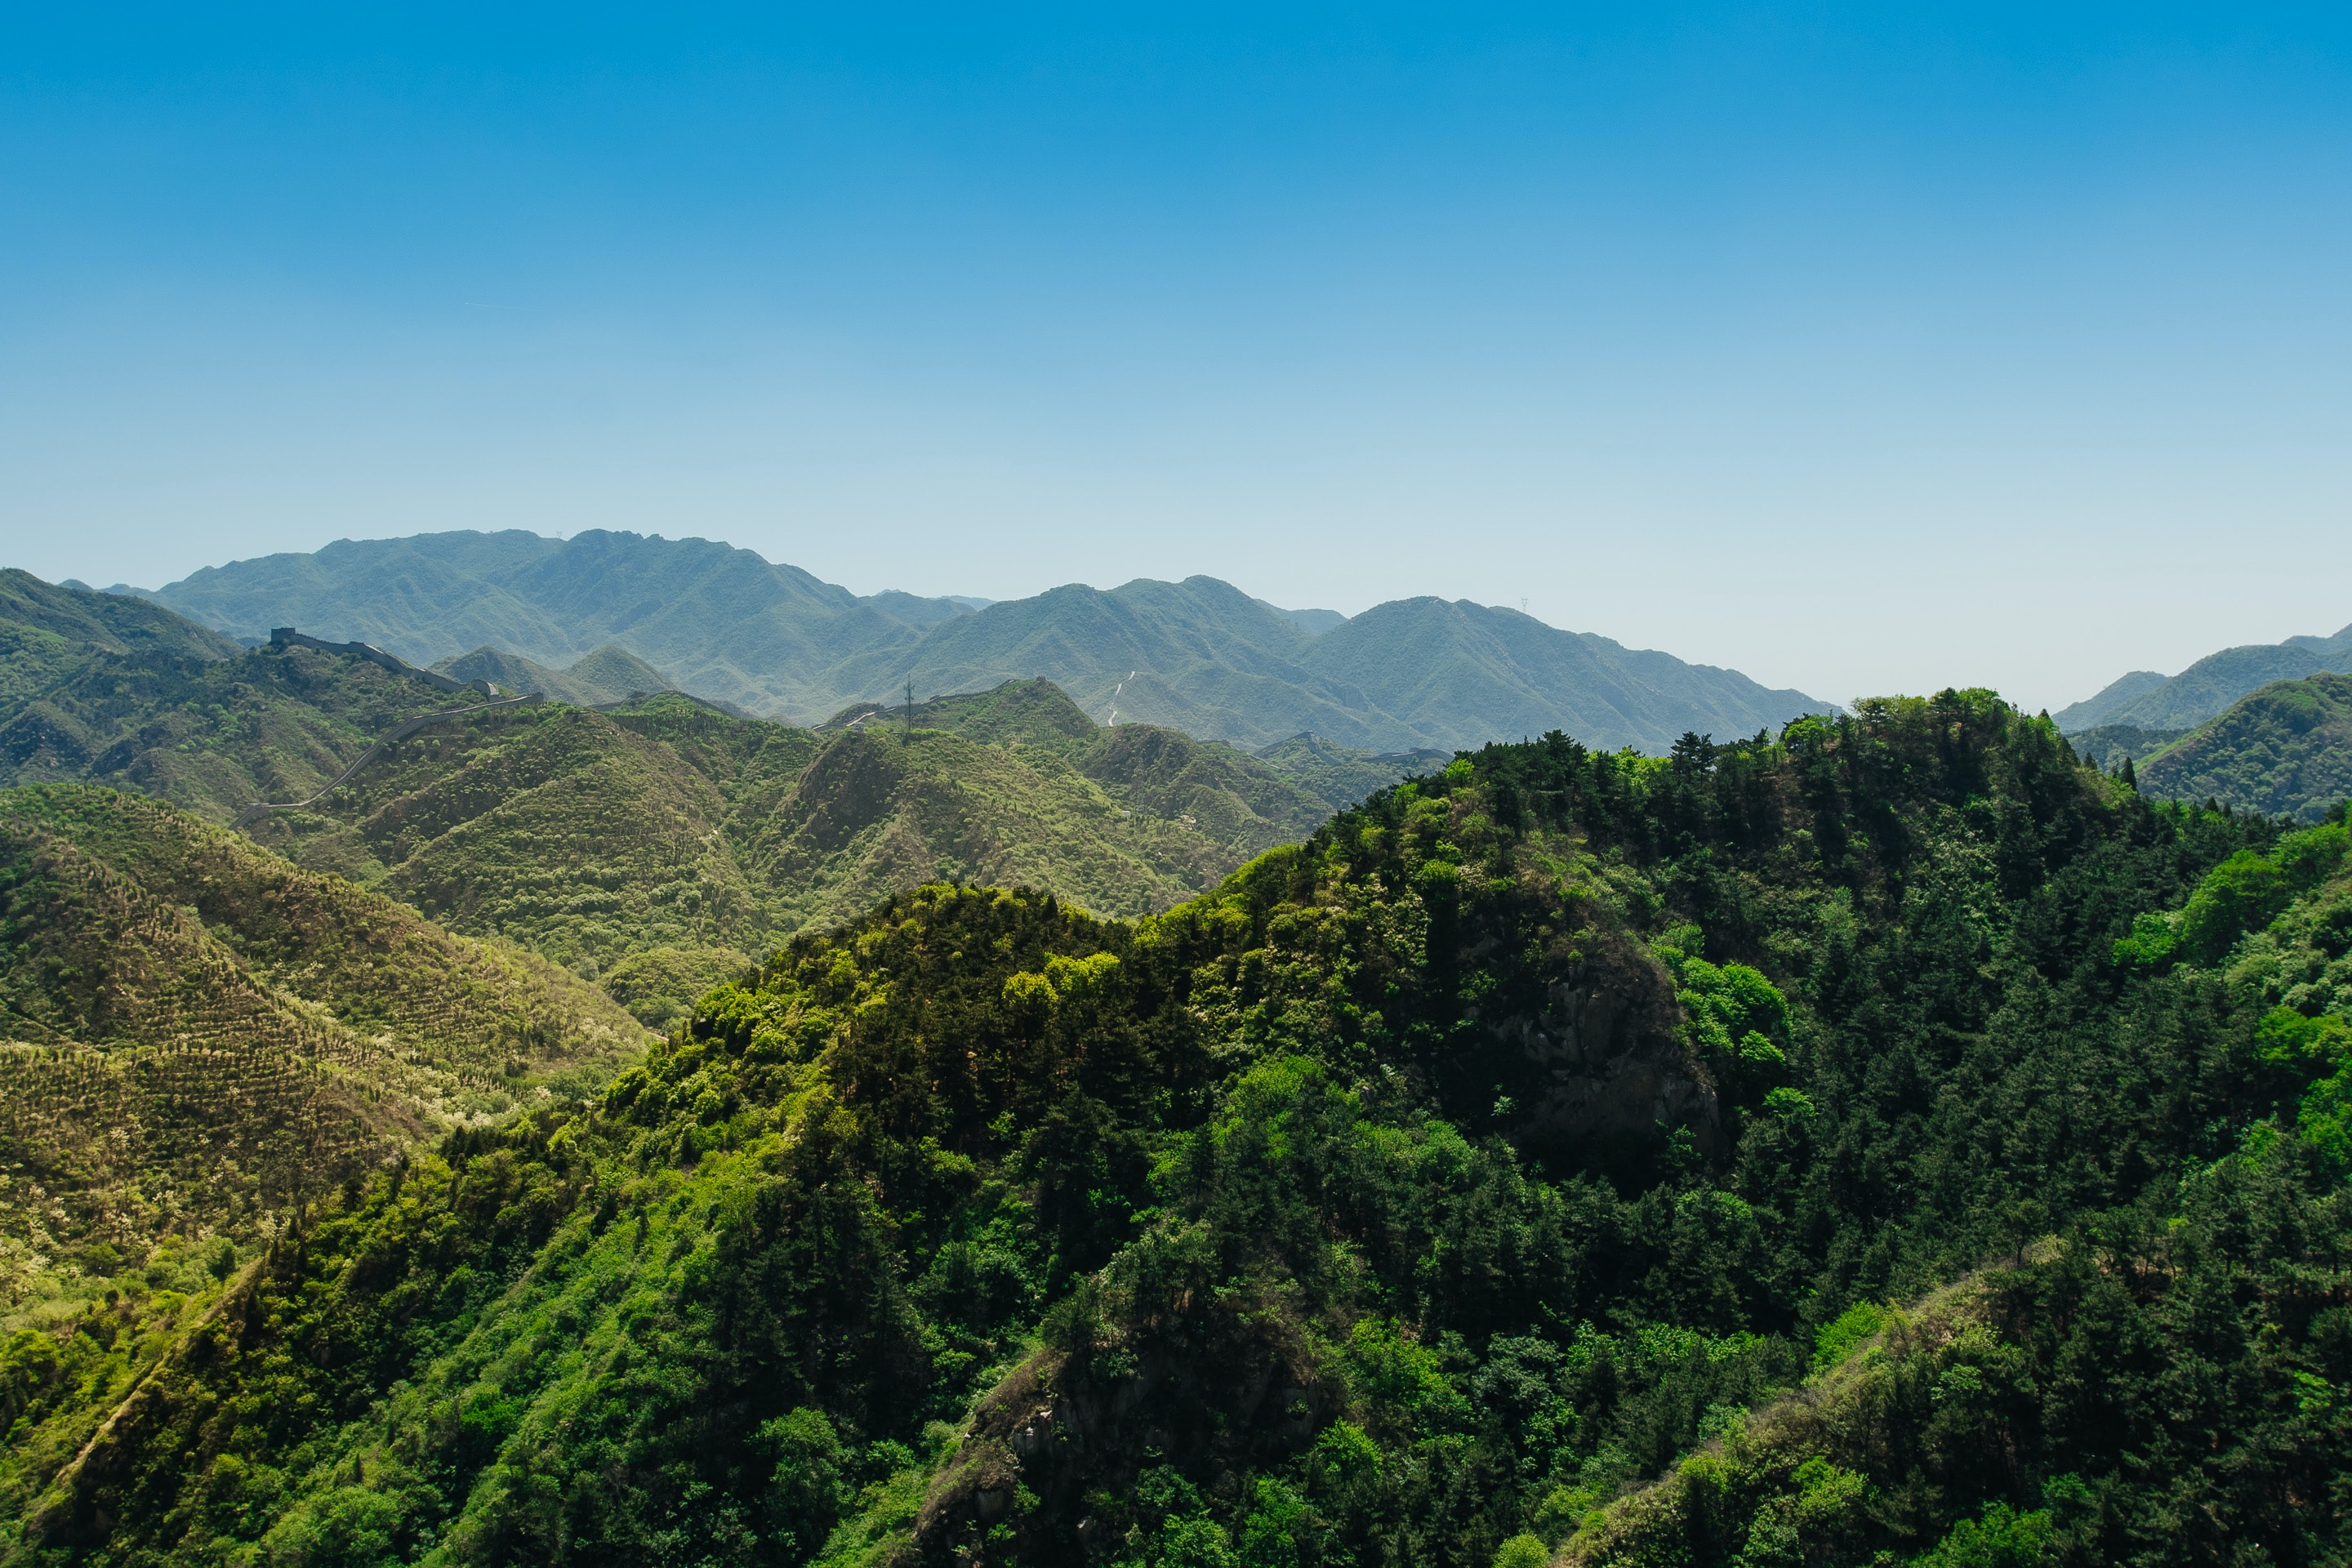 A mountainous rainforest landscape under a clear blue sky